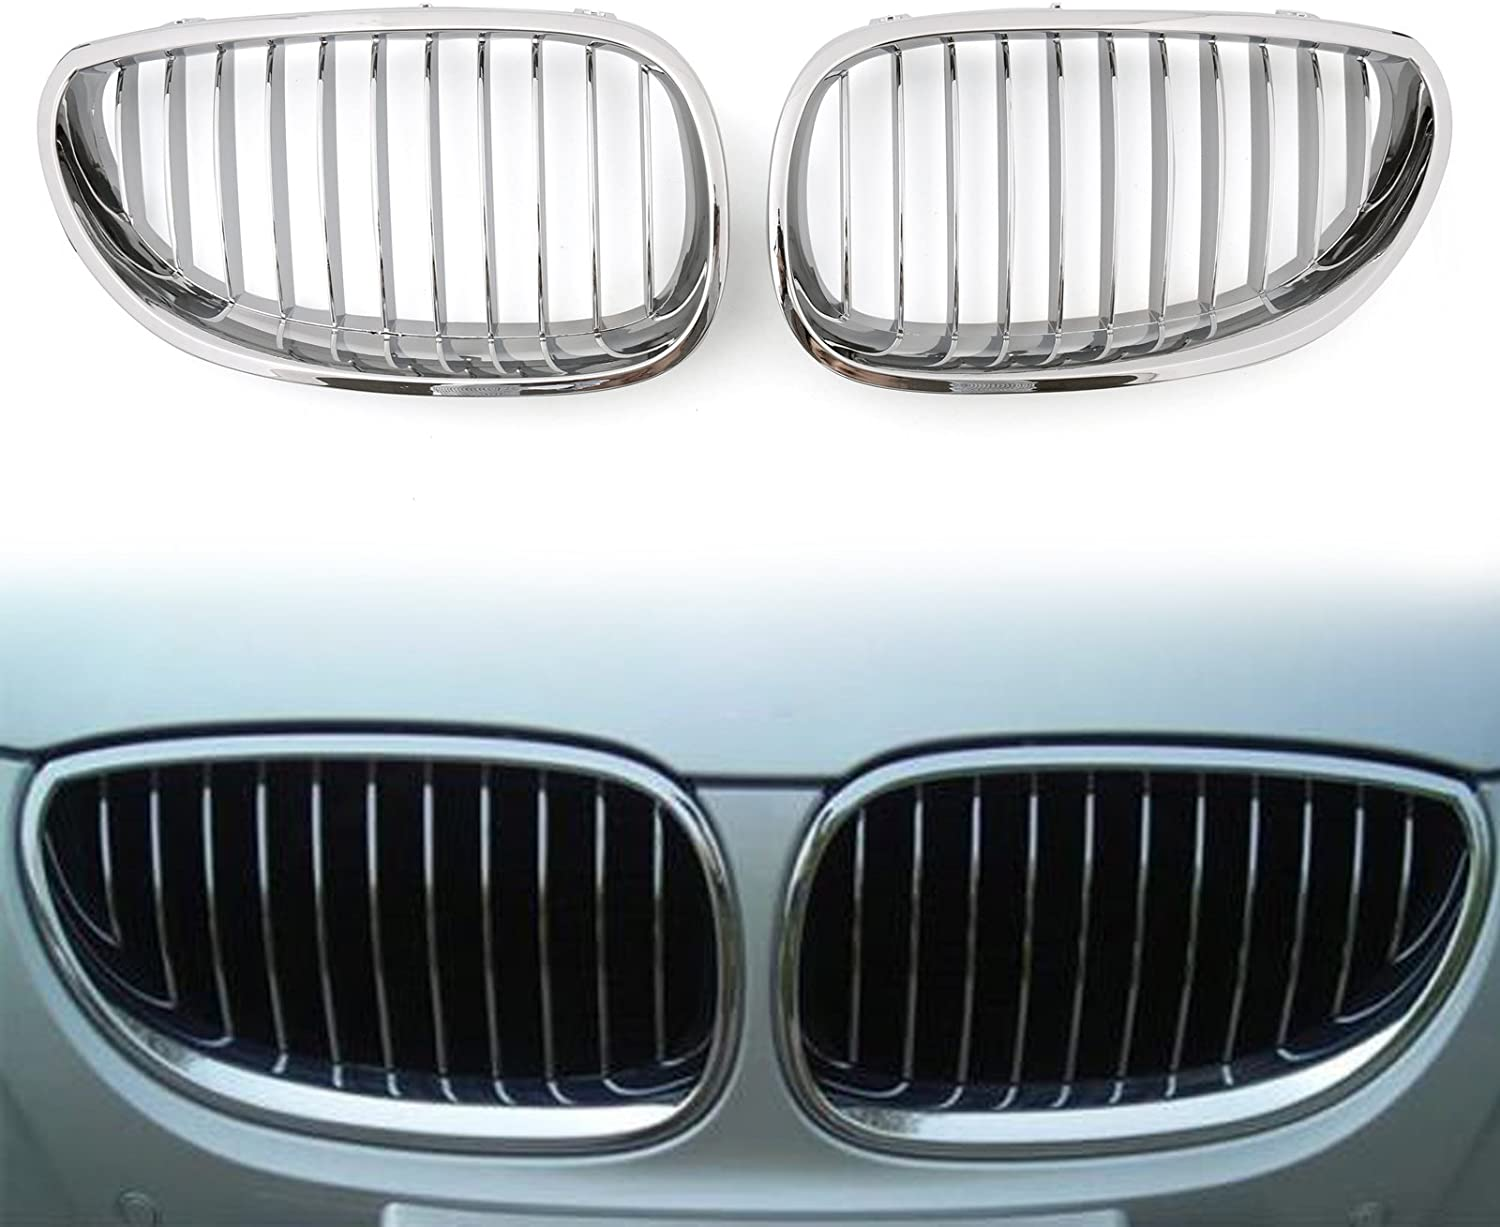 Artudatech Car Front Grill 1 Pair Mesh Double Grille Front Kidney Bumper Grilles Front Fence Grill for B M W E60 E61 5 Series M5 2003-2009